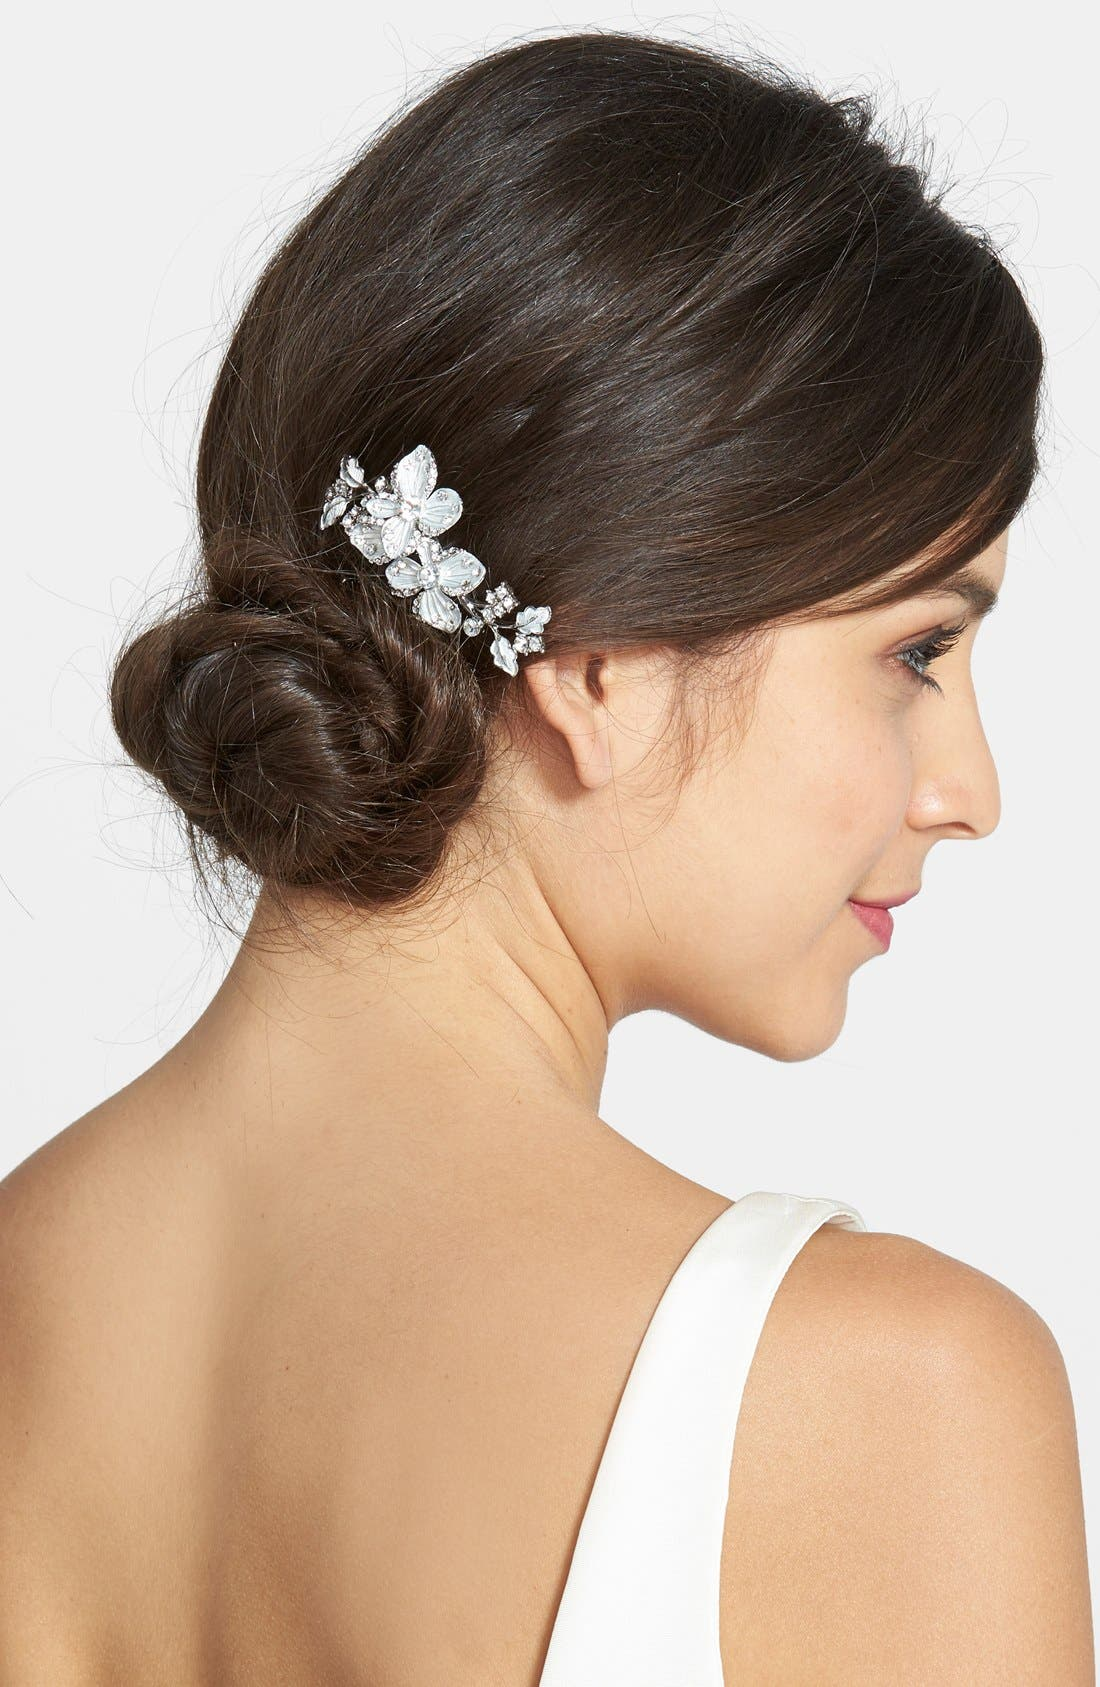 hair accessories wedding accessories | nordstrom